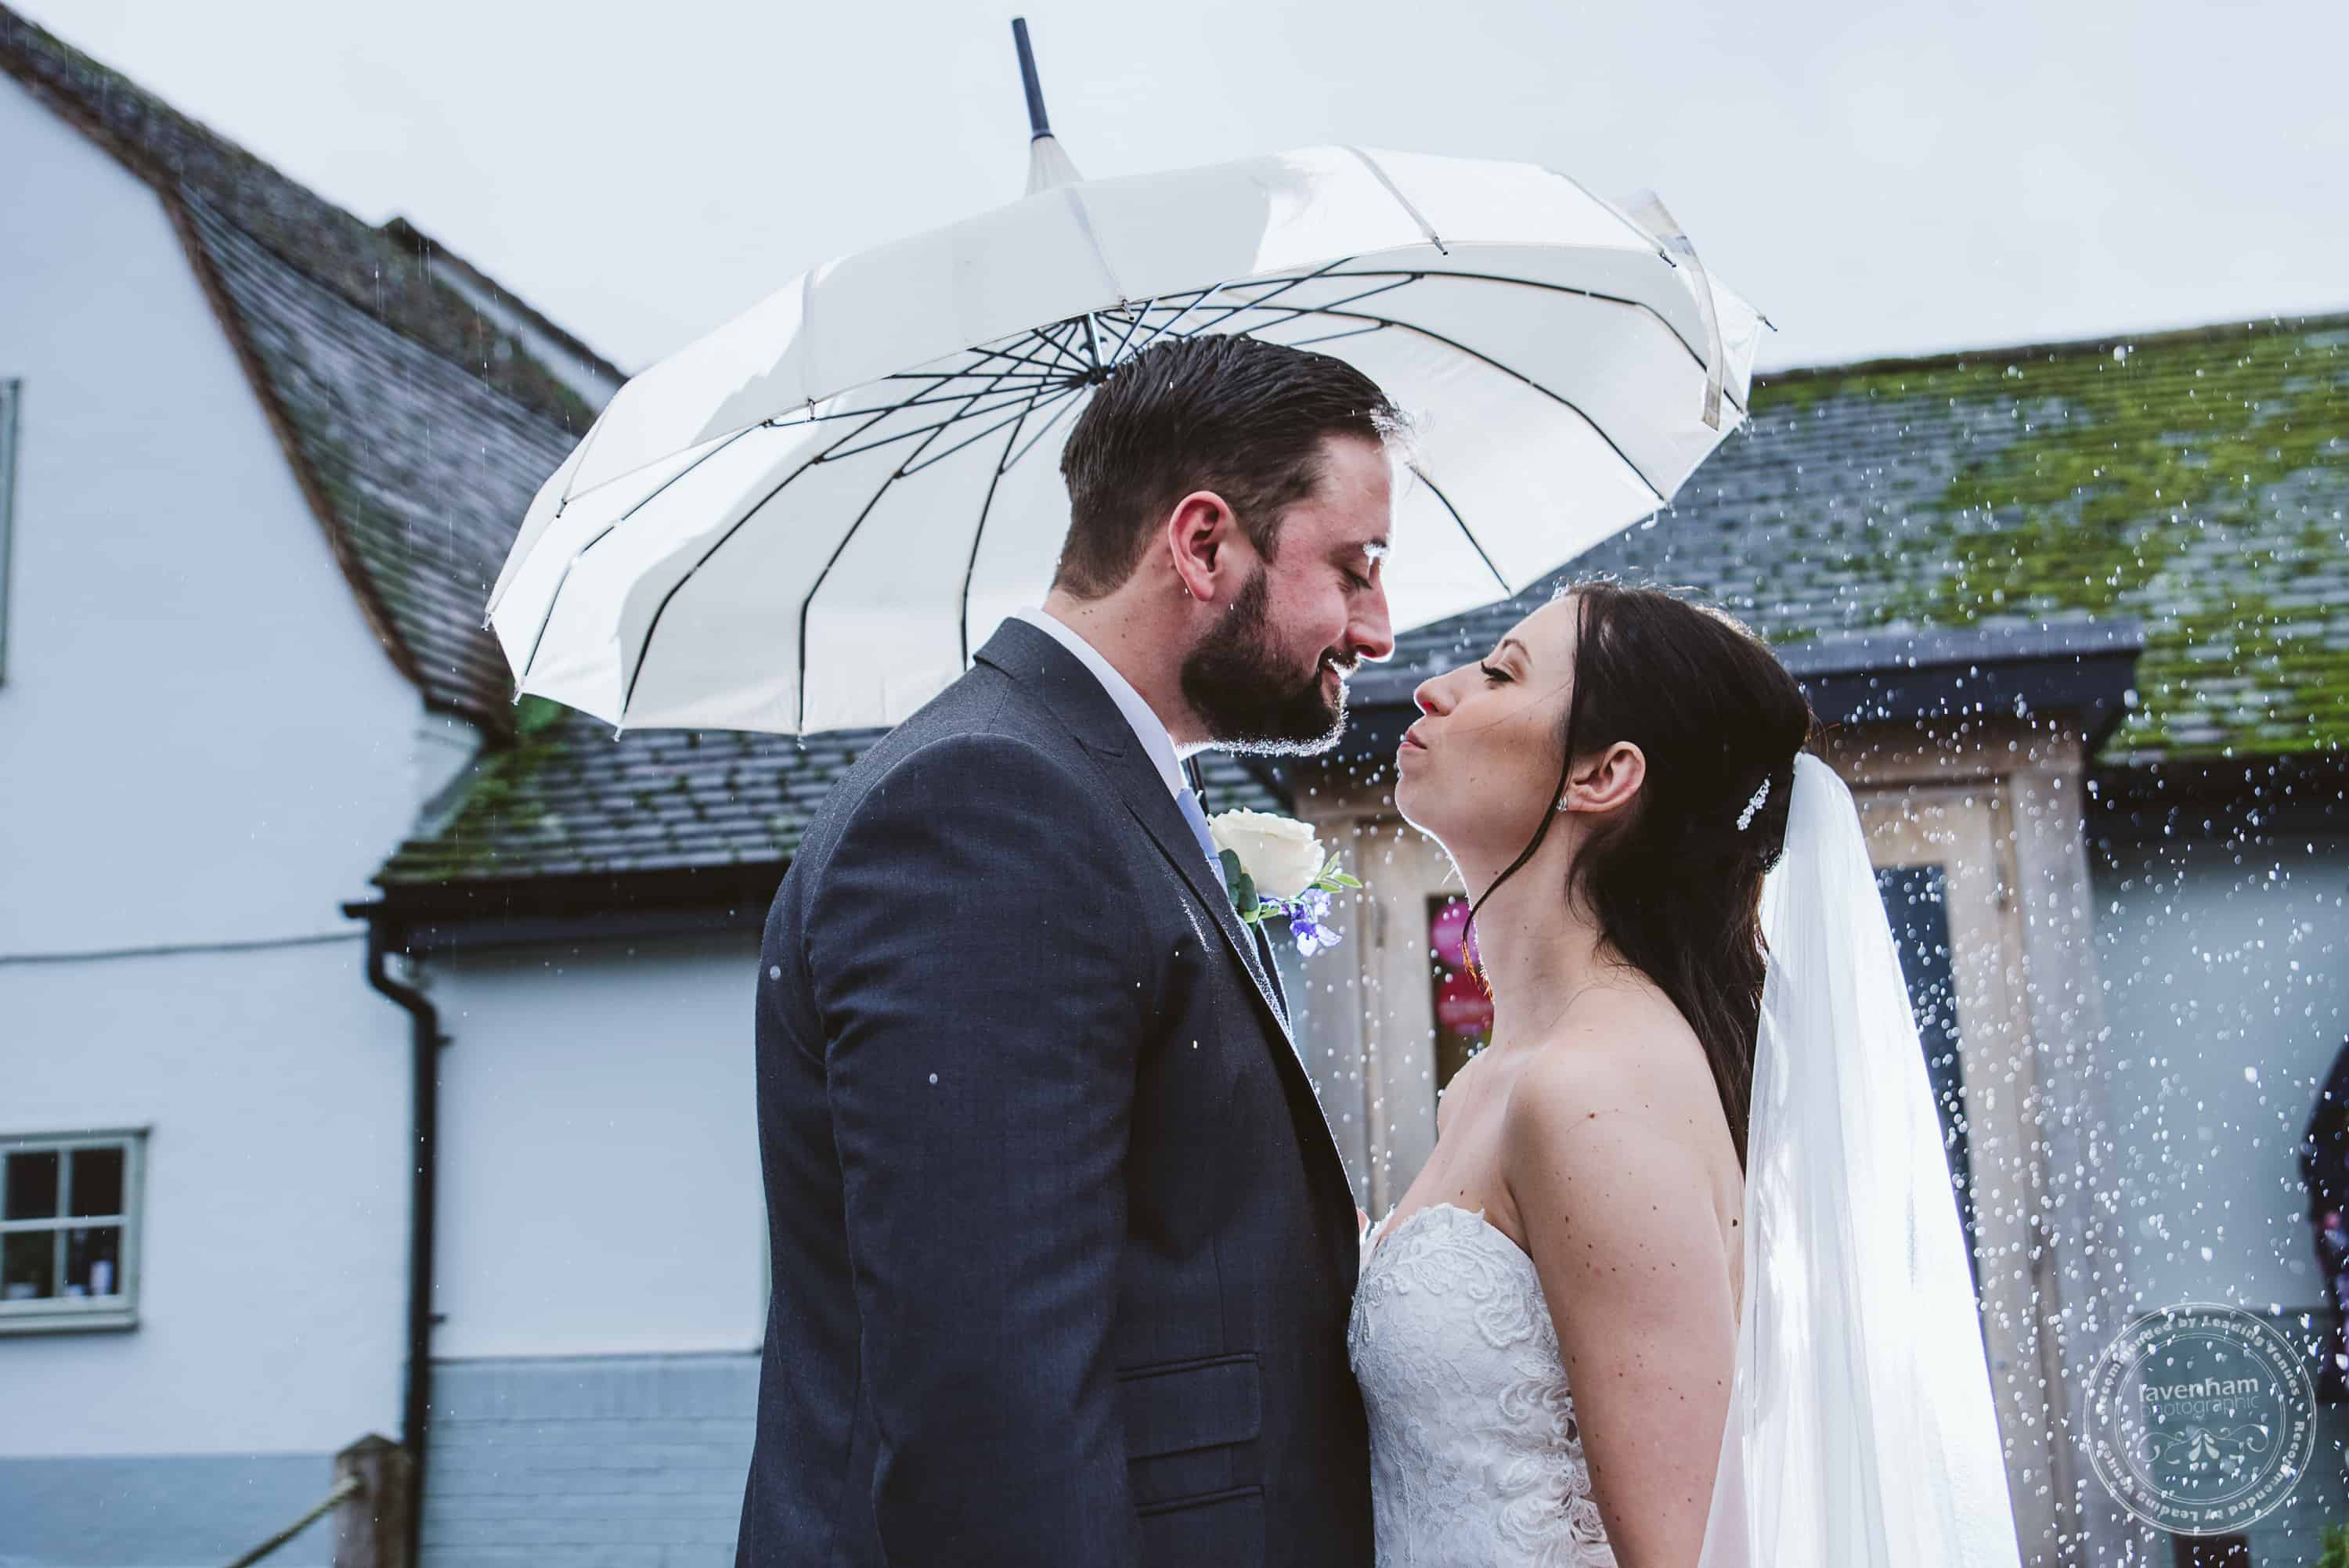 261019 Bull and Willow Room Essex Wedding Photographer 097